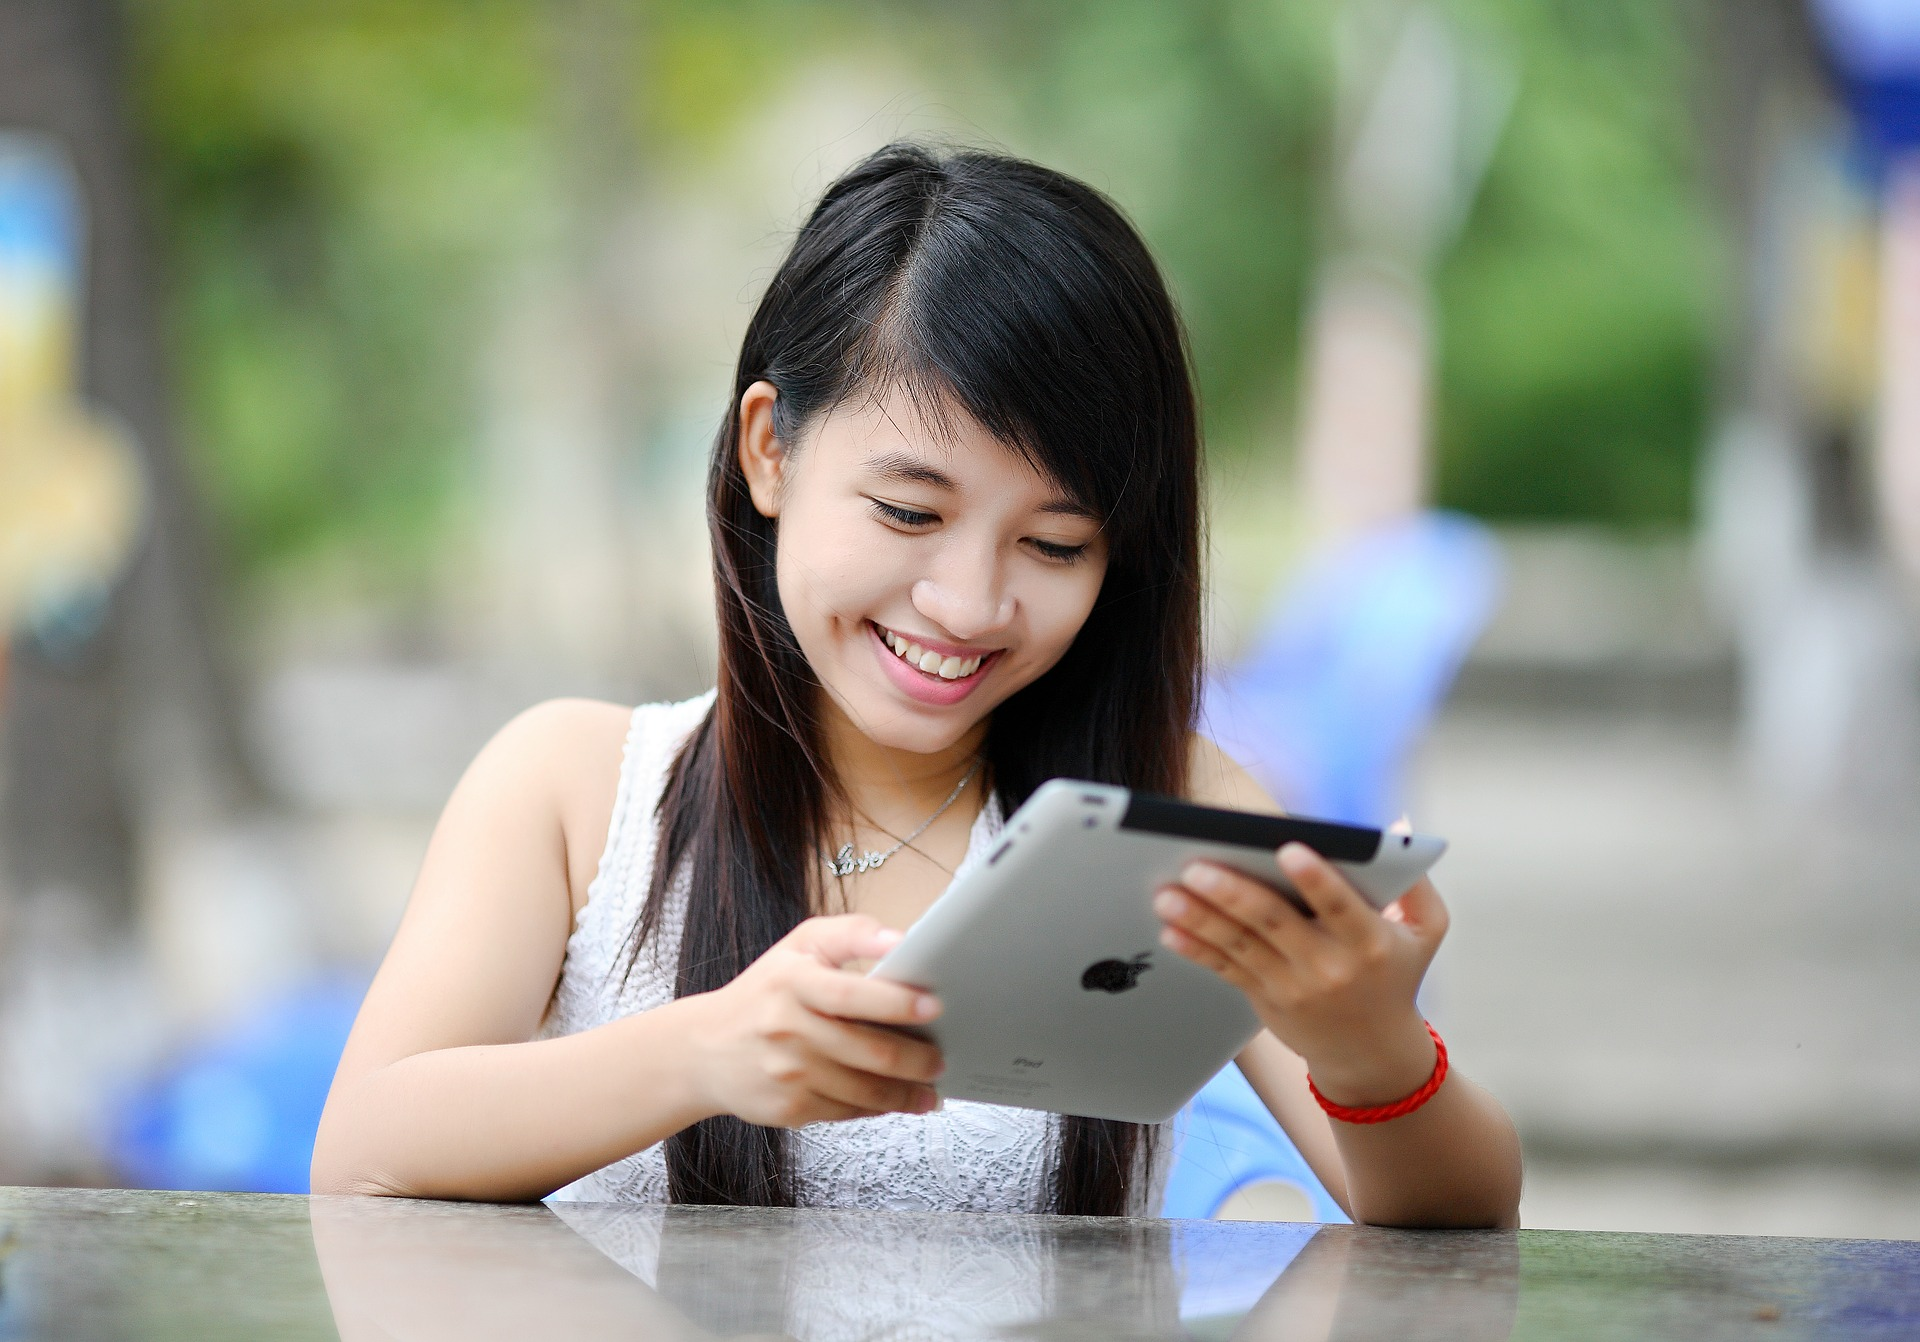 Chinese single girl shopping on tablet.